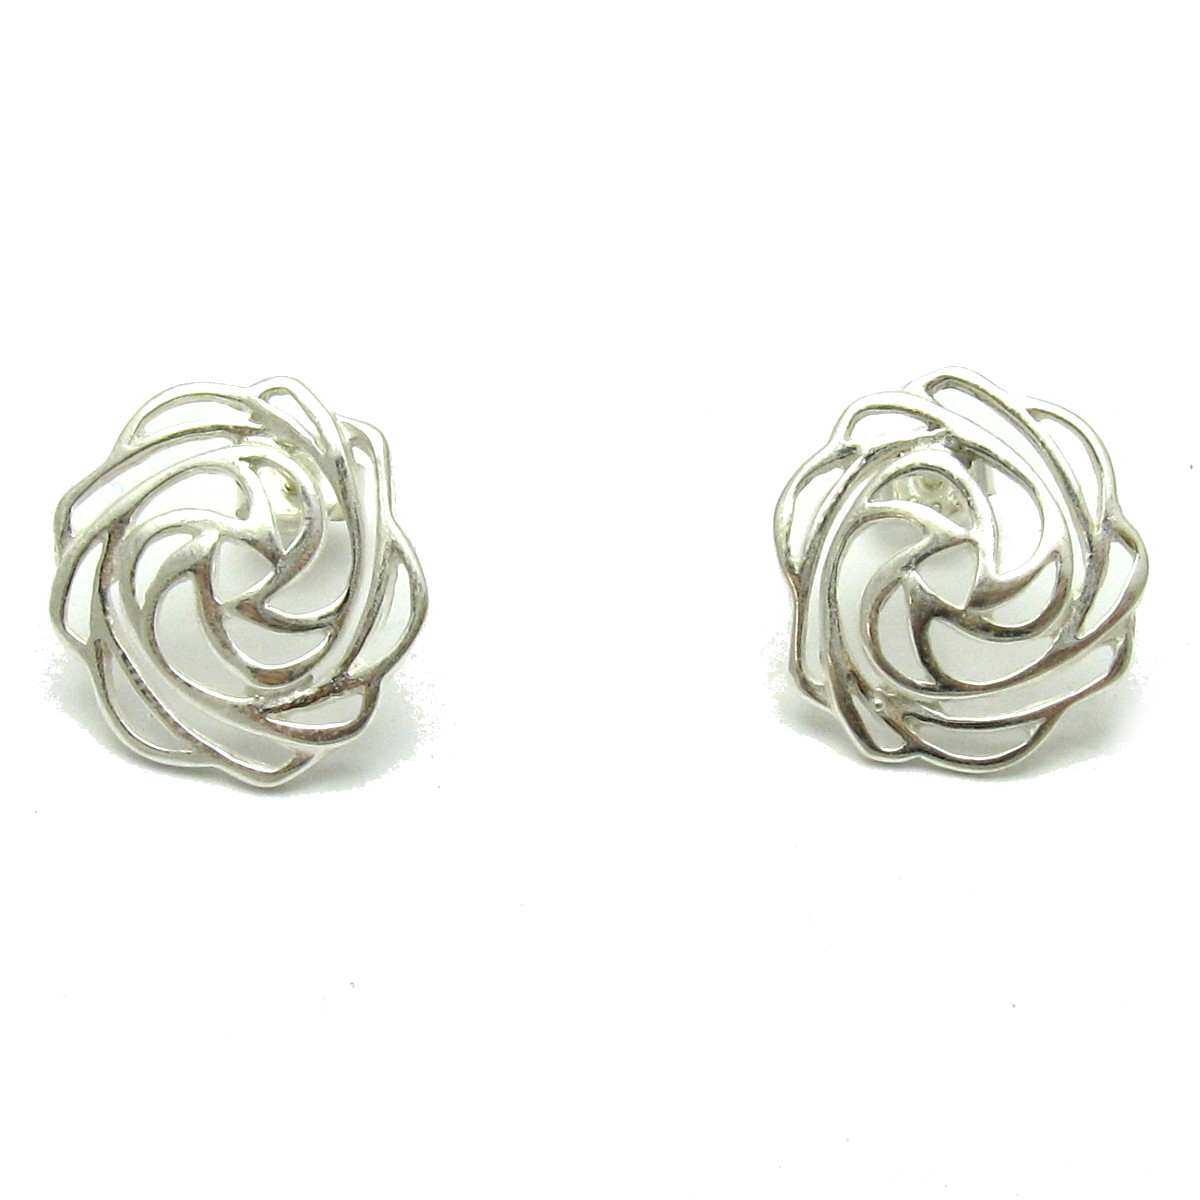 Silver earrings - E000600